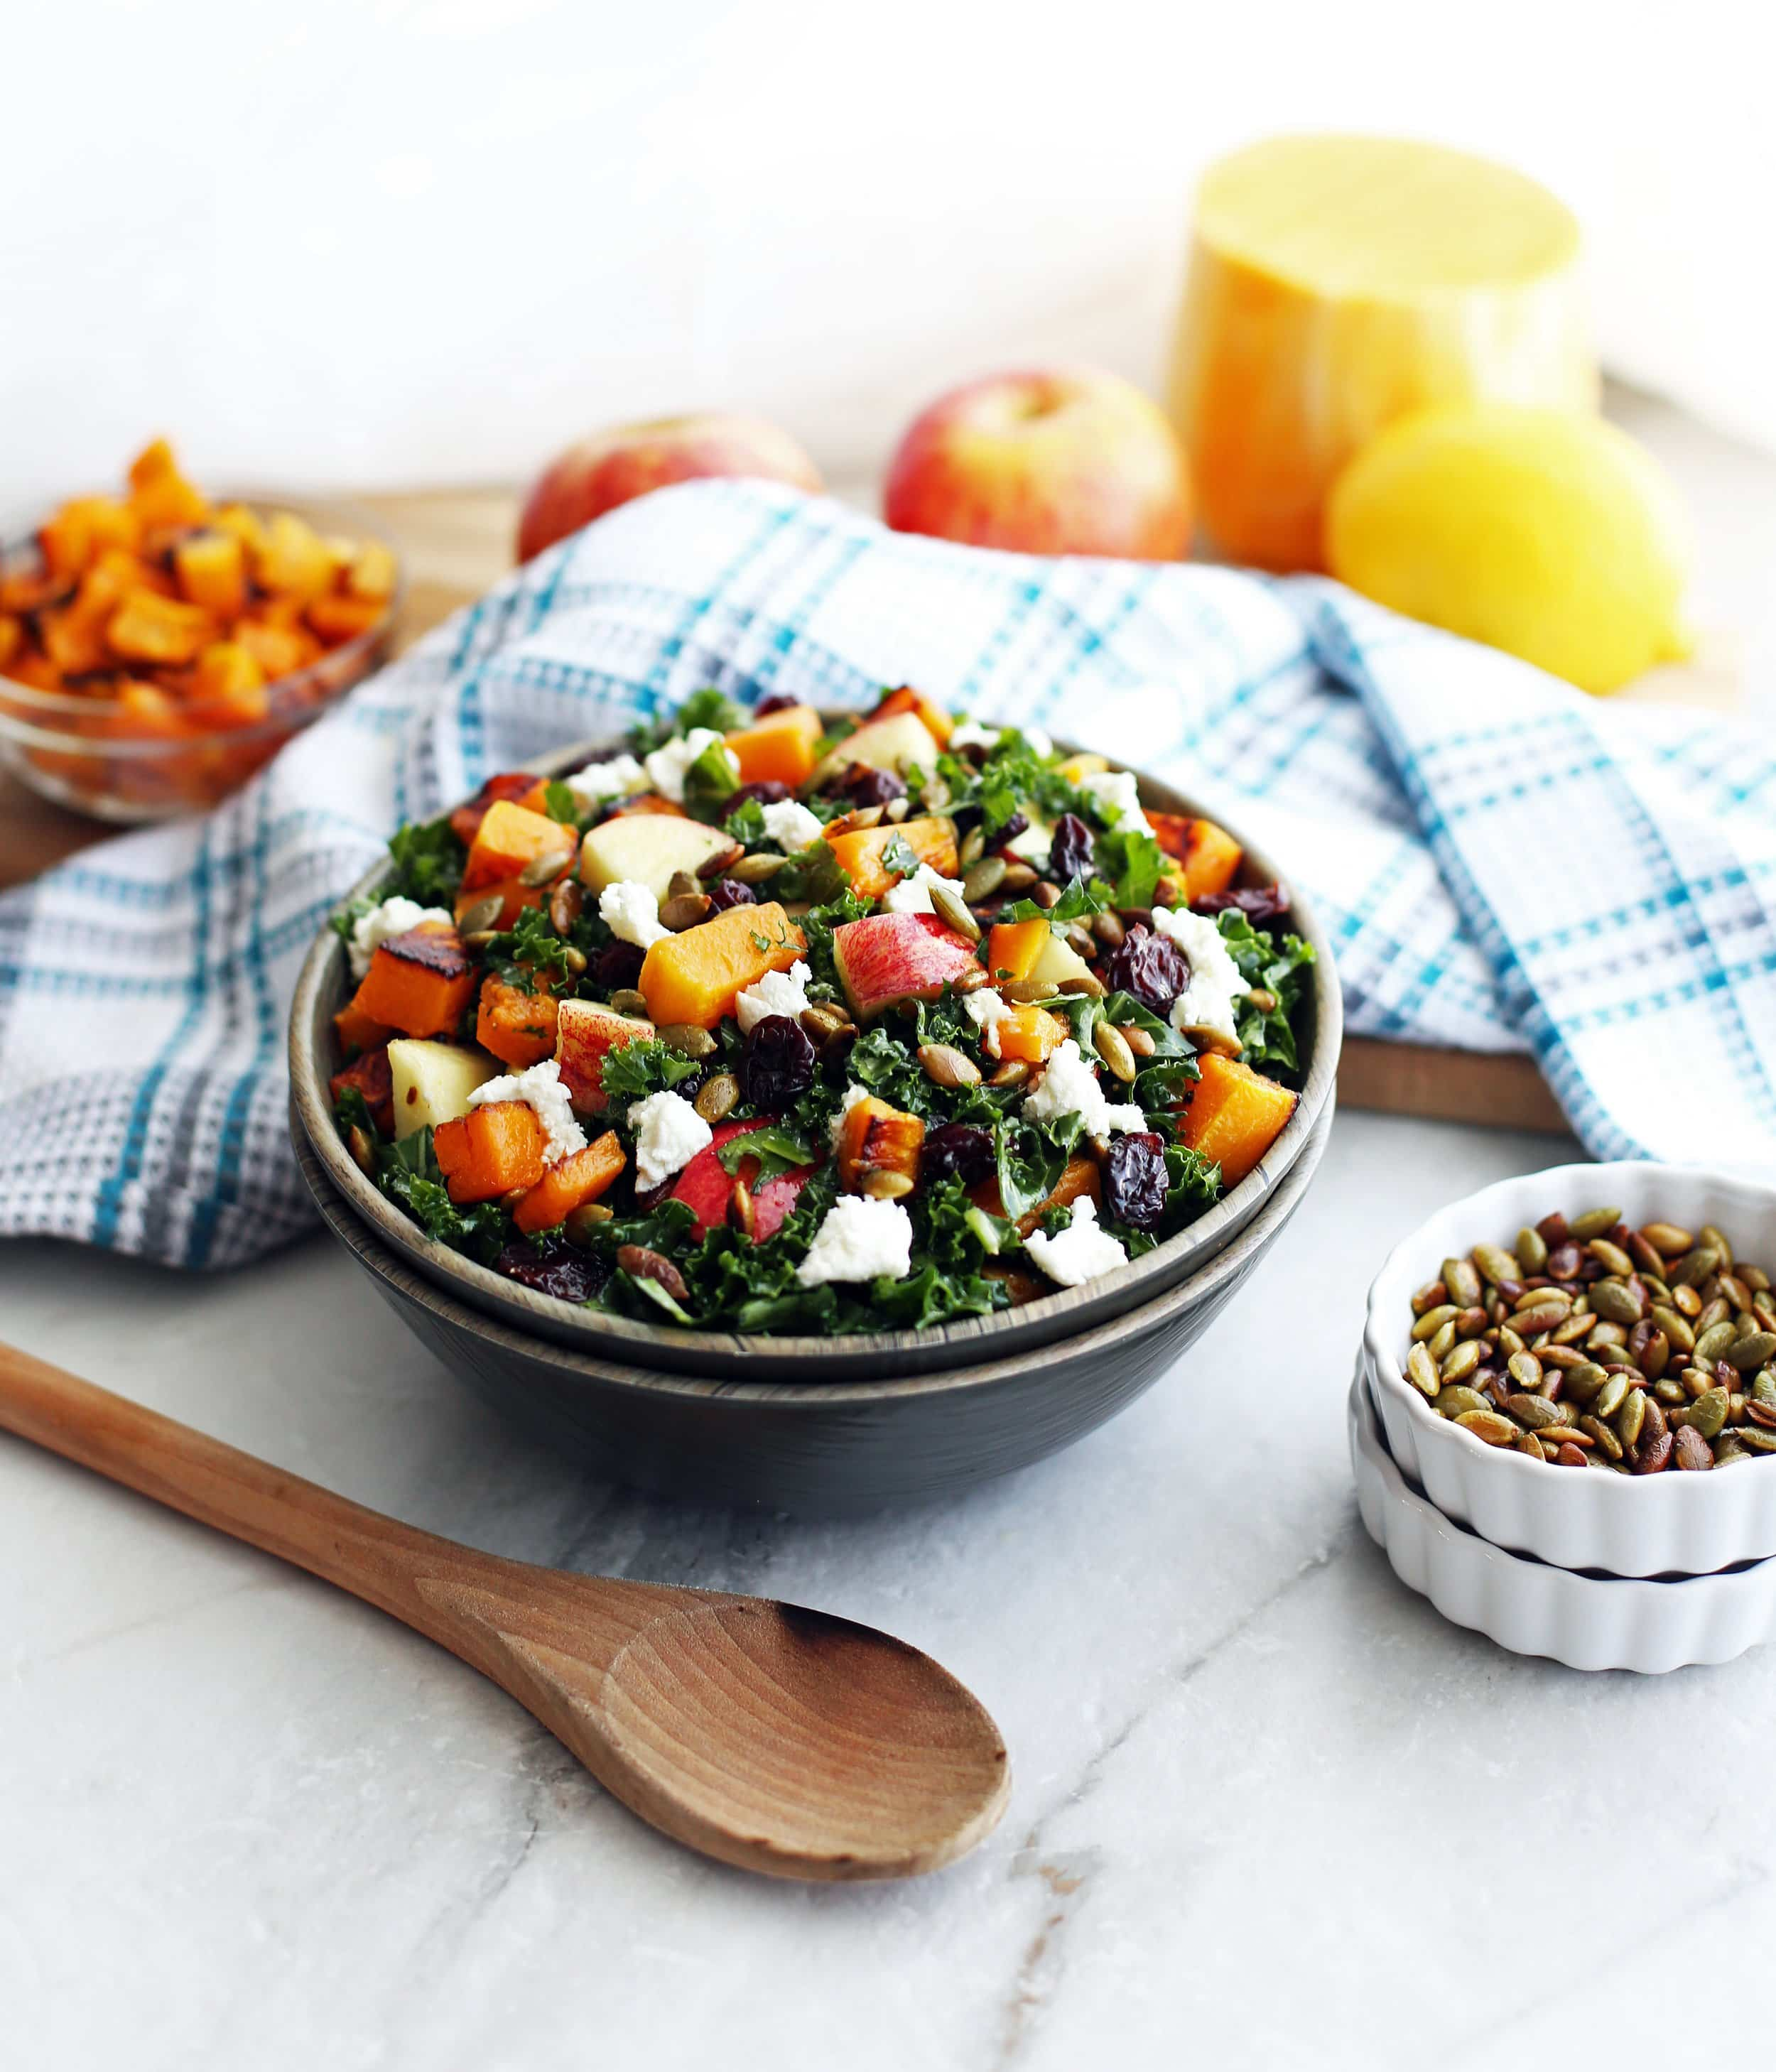 A wooden bowl filled with Roasted Butternut Squash and Apple Kale Salad with Lemon Vinaigrette